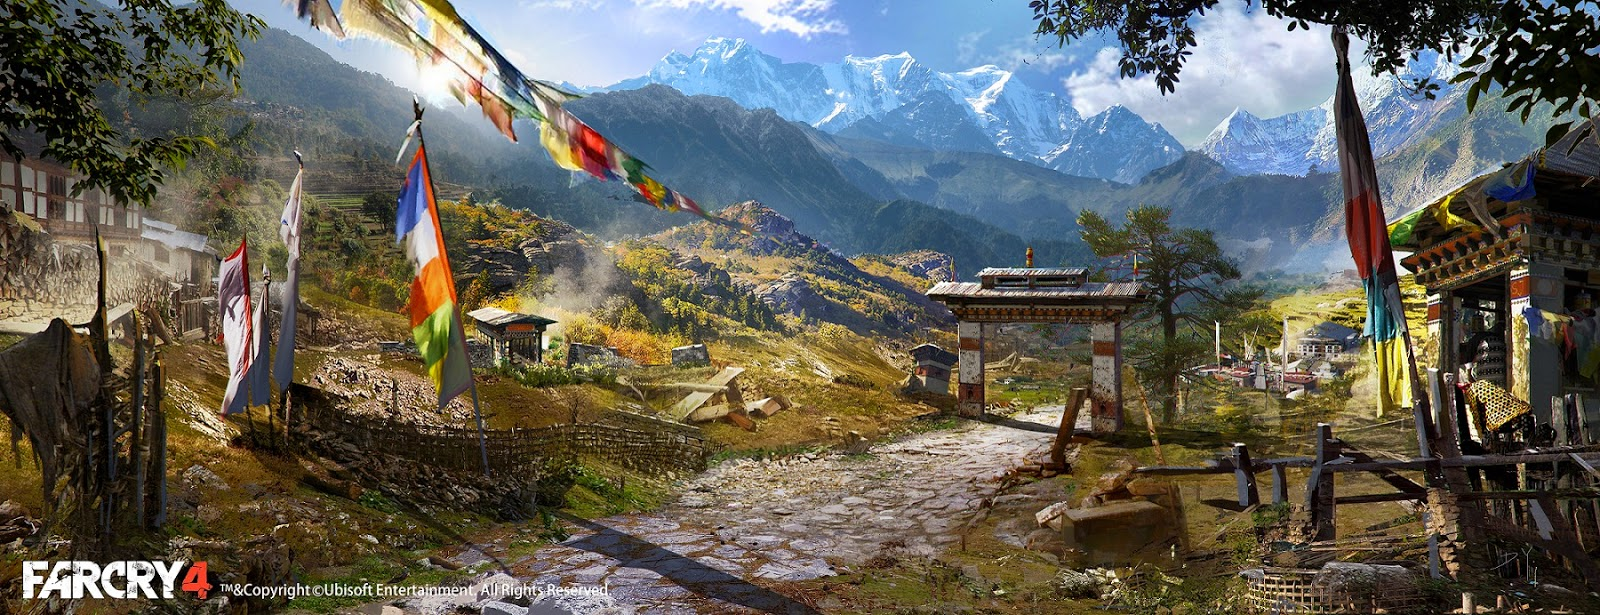 far cry 4 concept art 12